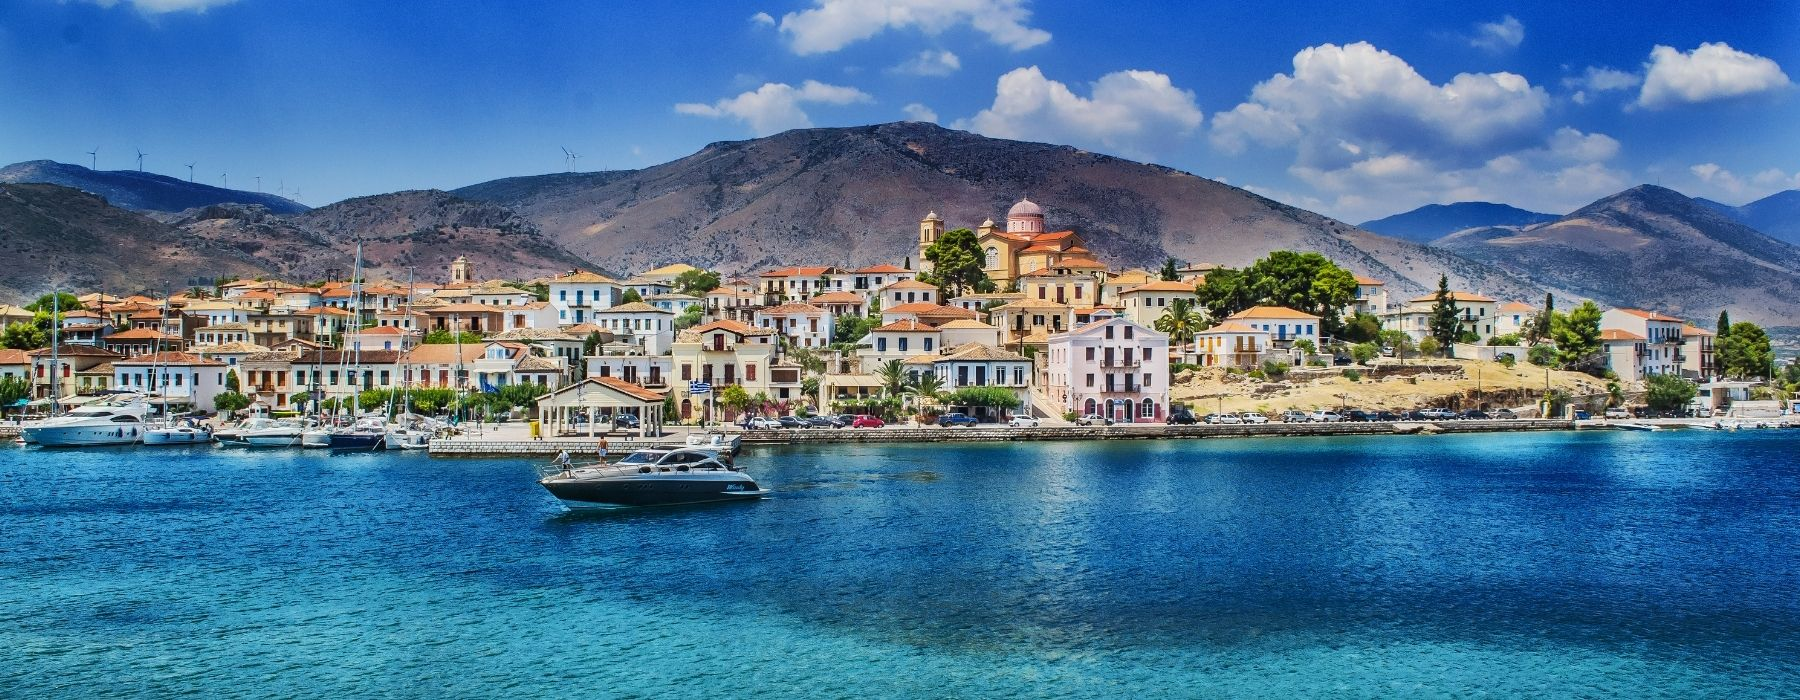 Blue Zoning In Lockdown – How Can You Adapt Such A Lifestyle?